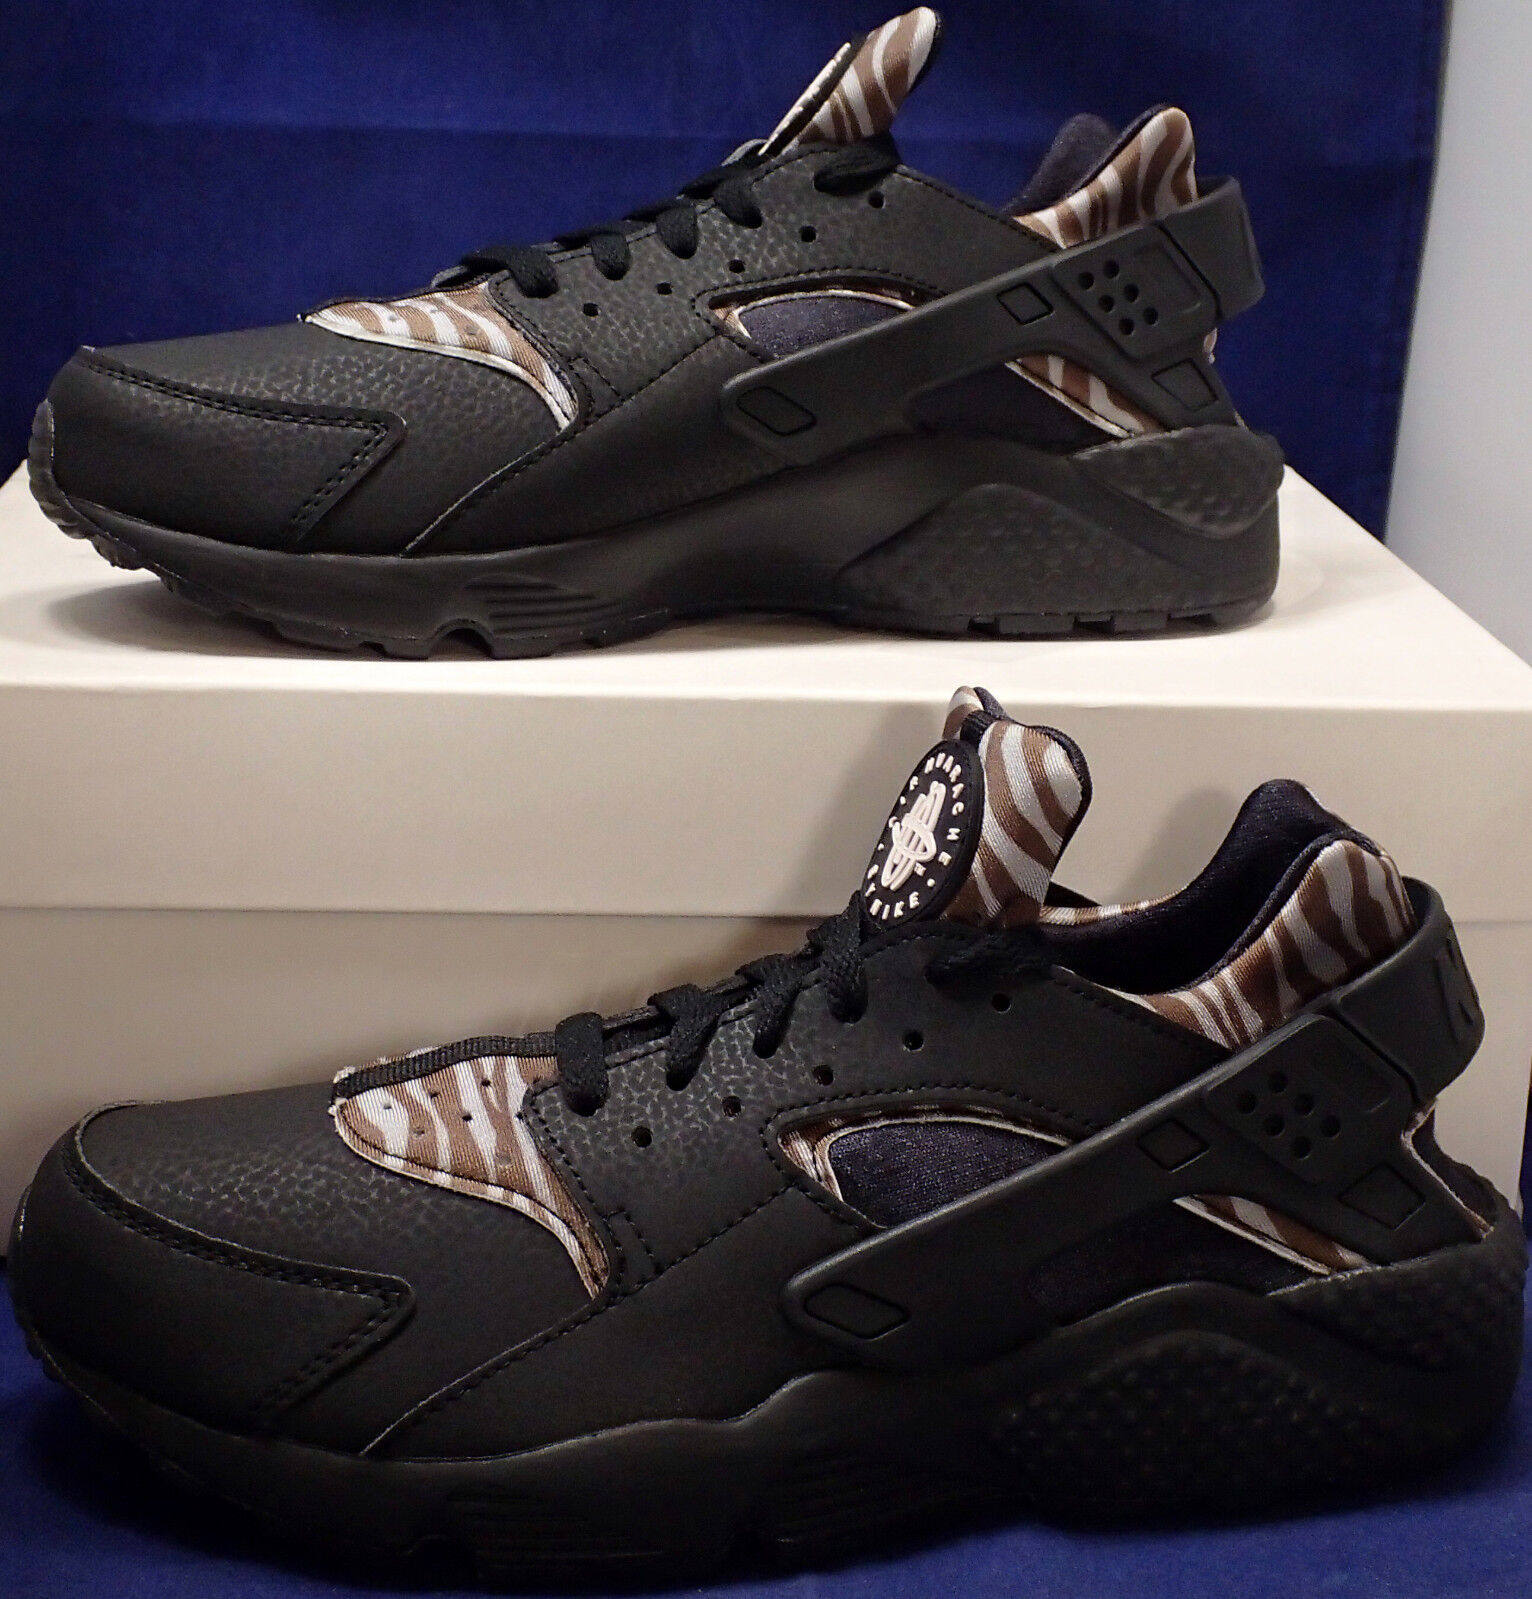 Nike Air Huarache Run iD Zebra Stripes Black Brown Price reduction New shoes for men and women, limited time discount